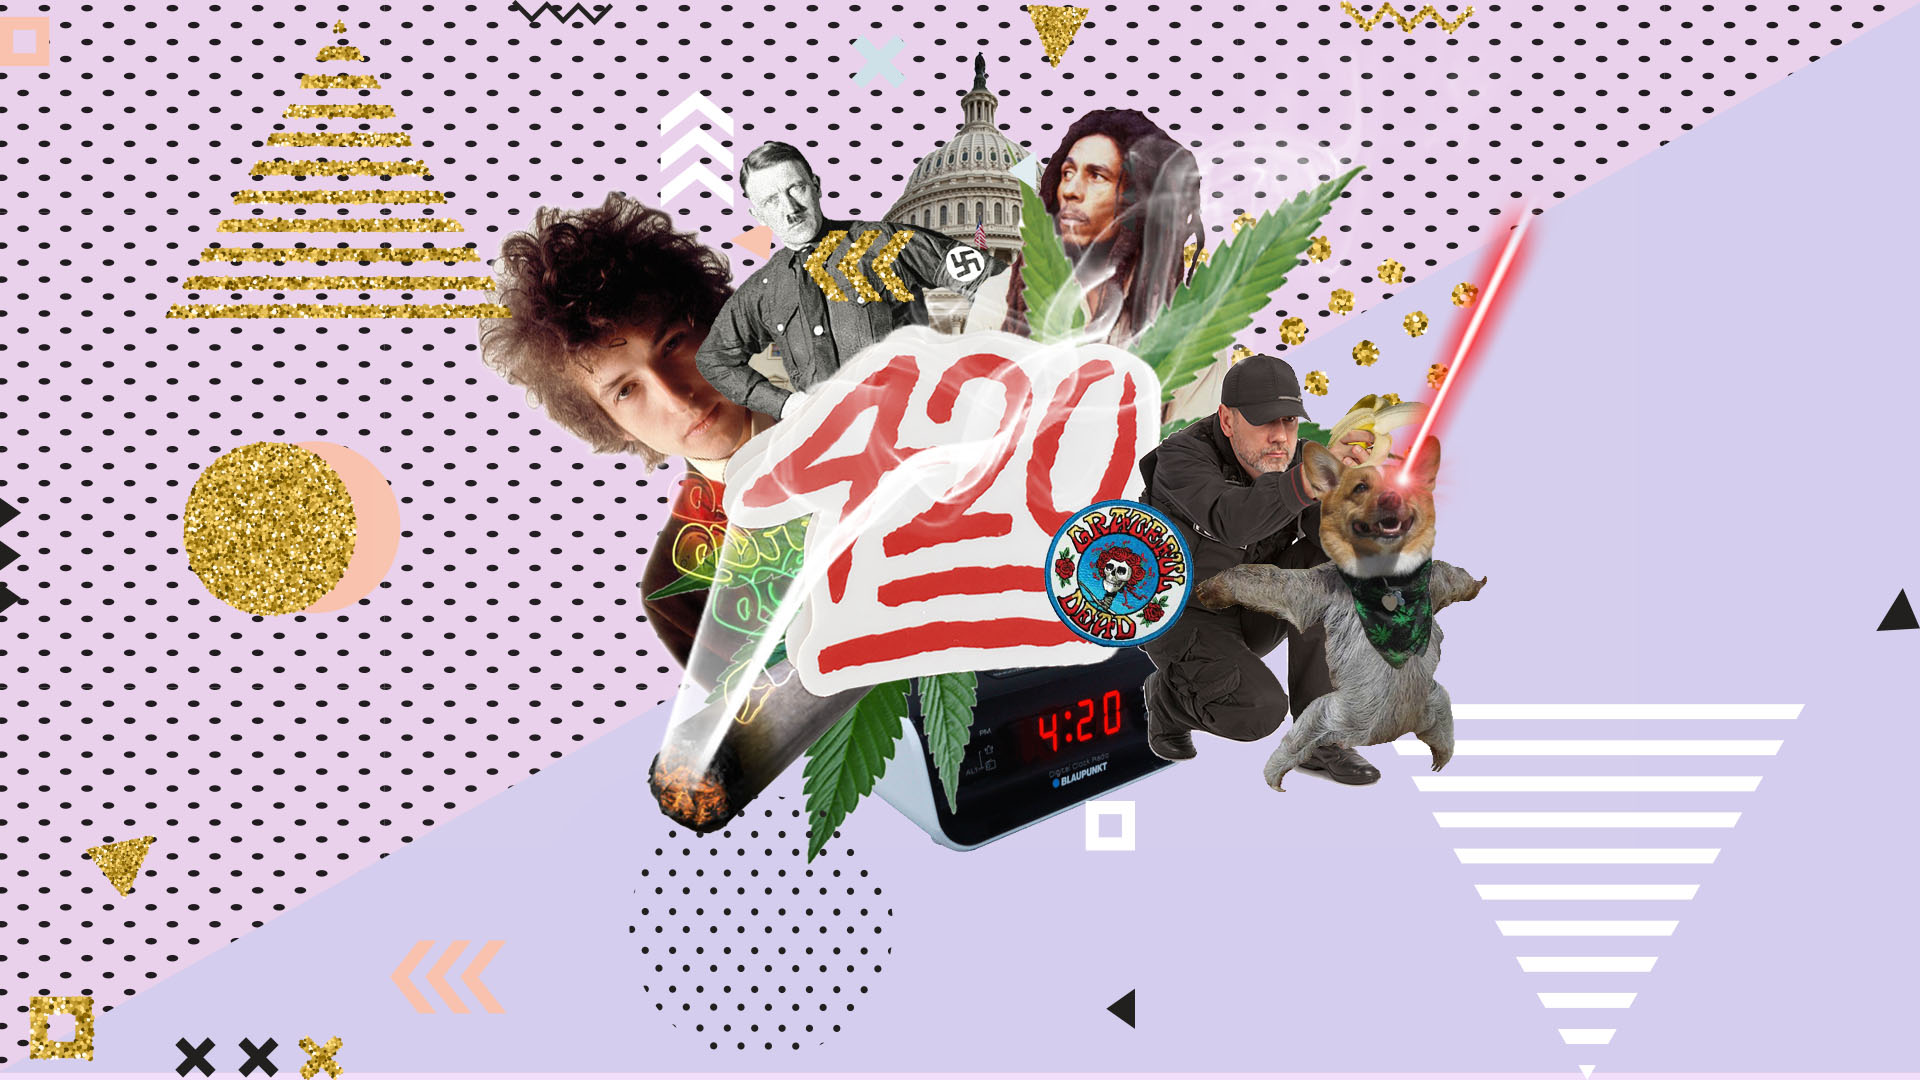 Pop-culture references related to the origins of 420 and its myths.